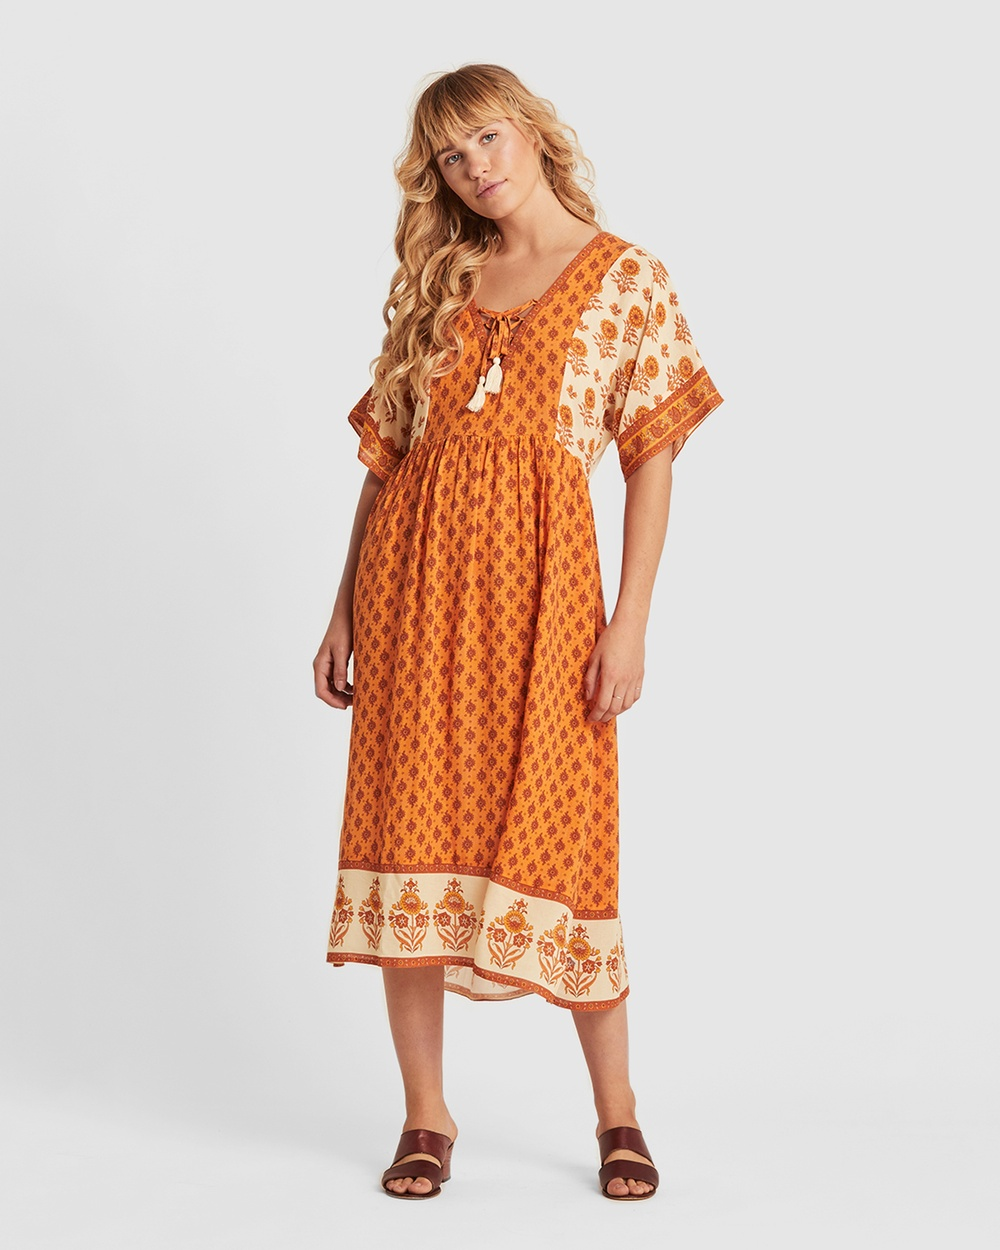 Arnhem Orange Soriah Marmalade Midi Dress